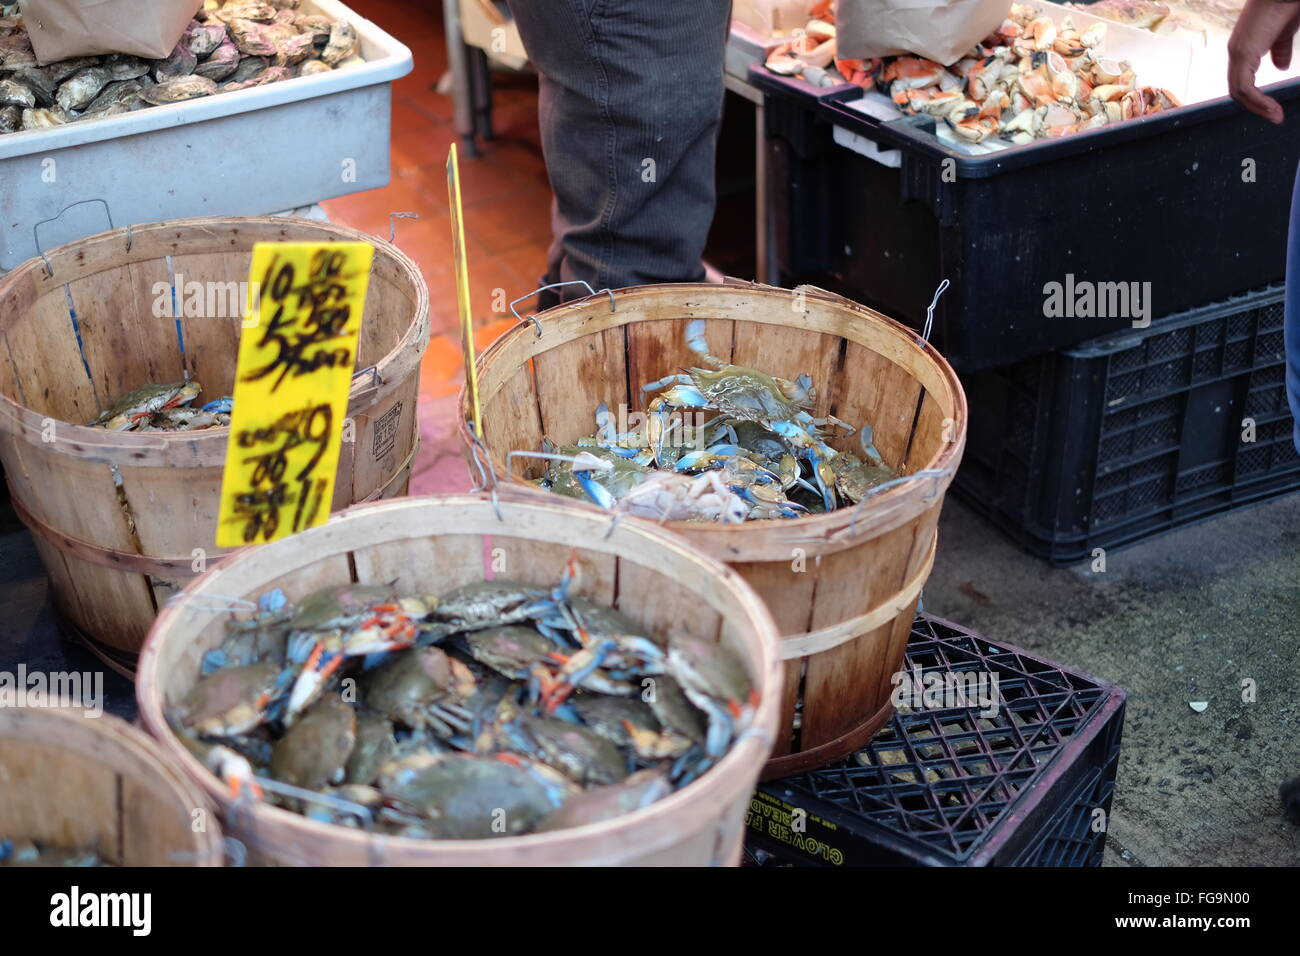 High Angle View Of Crabs In Containers For Sale At Fish Market - Stock Image